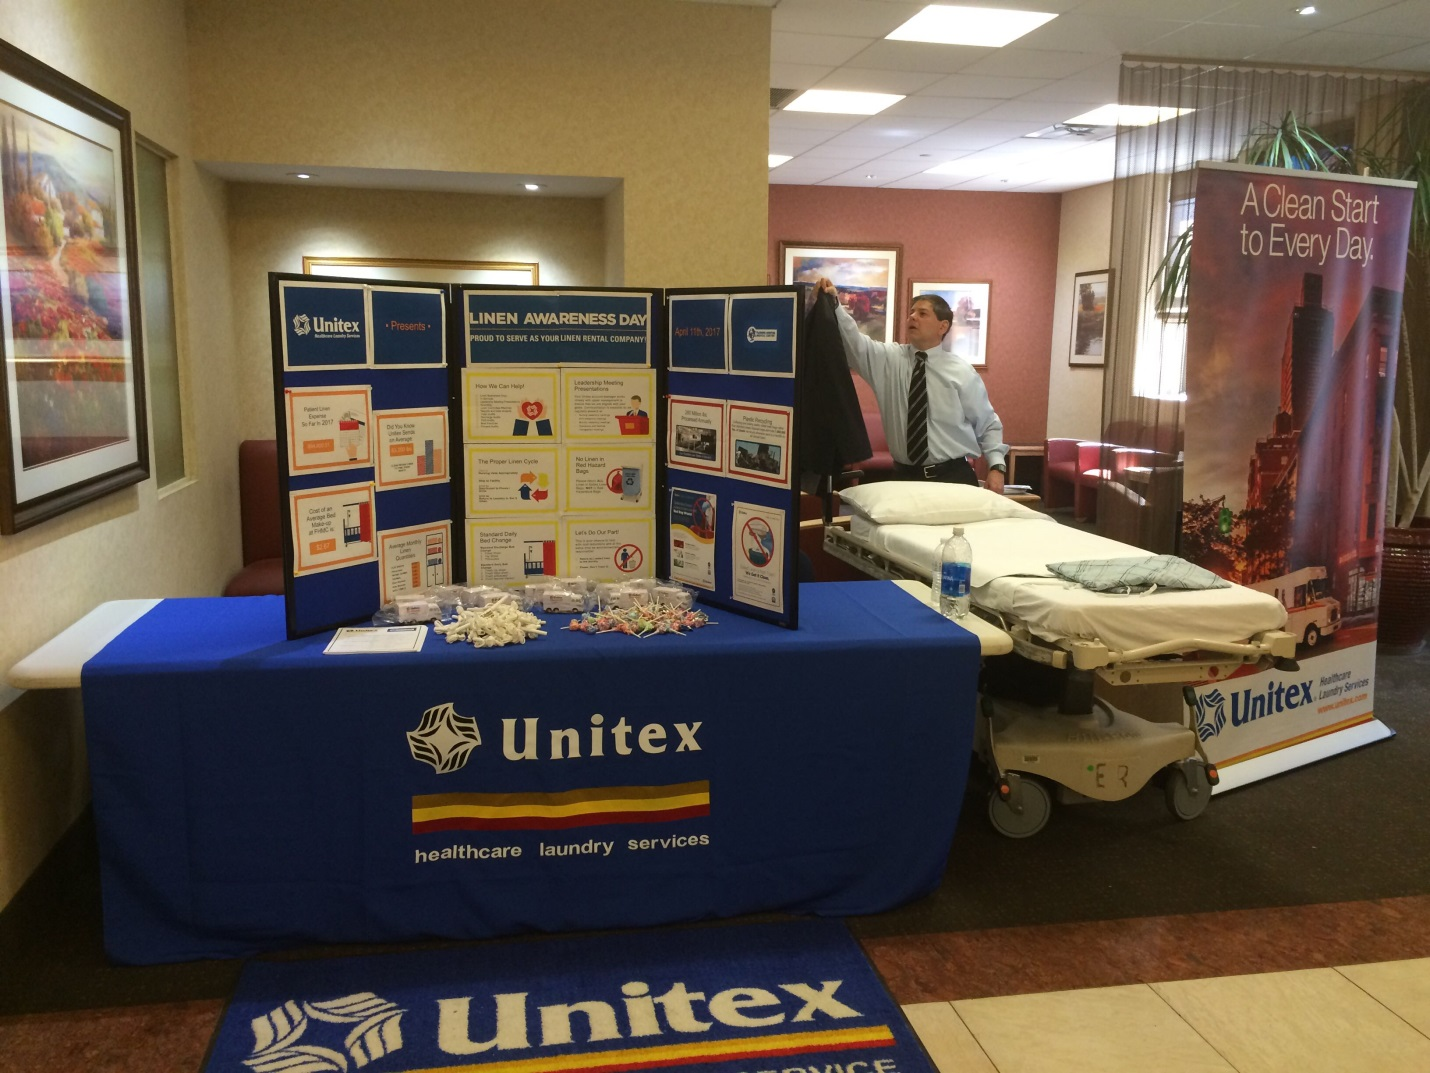 linen awareness day jhmc 2017 medisys health network